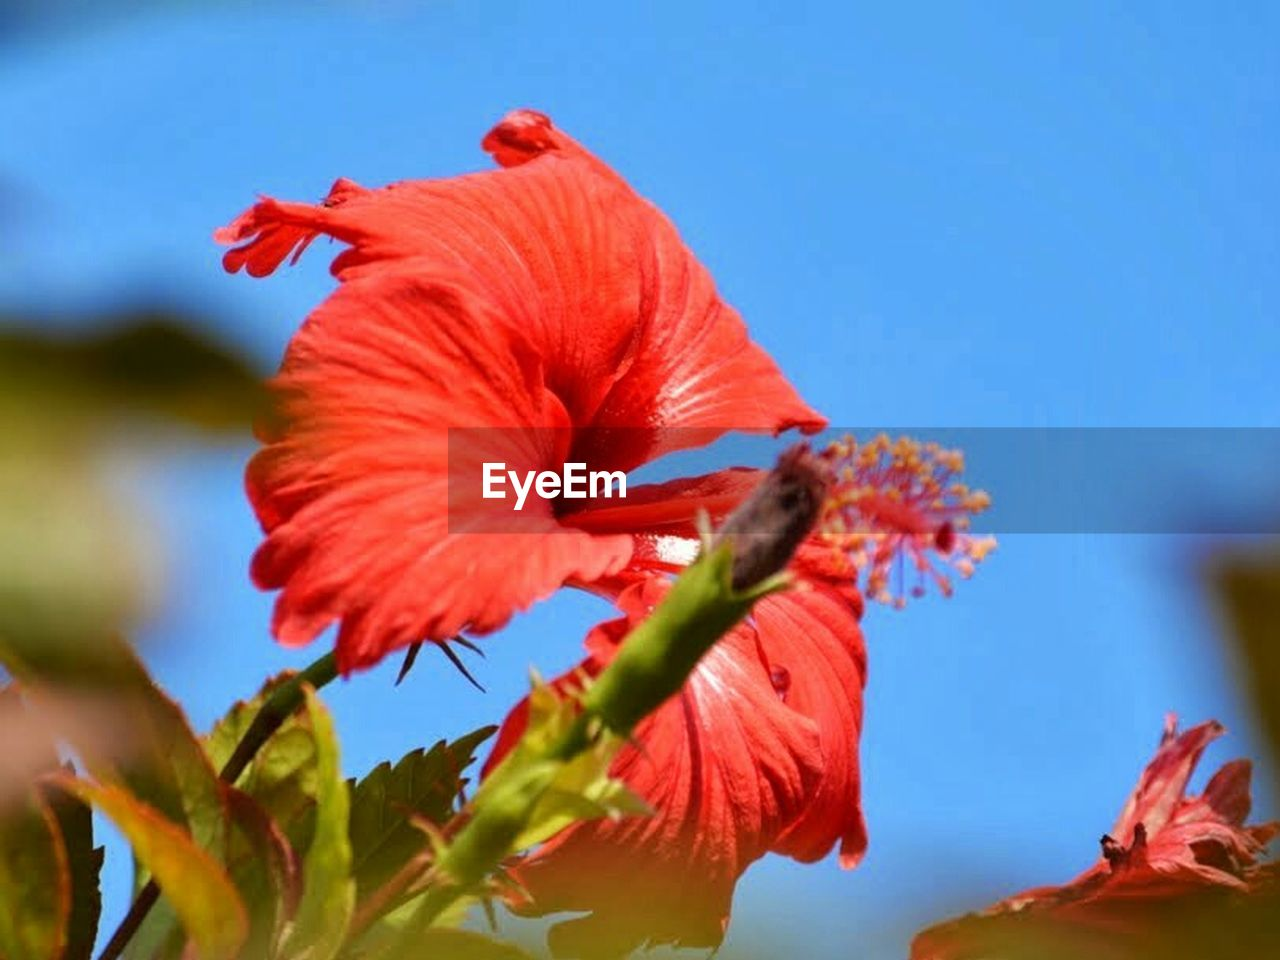 flower, nature, day, close-up, outdoors, low angle view, petal, freshness, no people, fragility, beauty in nature, red, sky, flower head, hibiscus